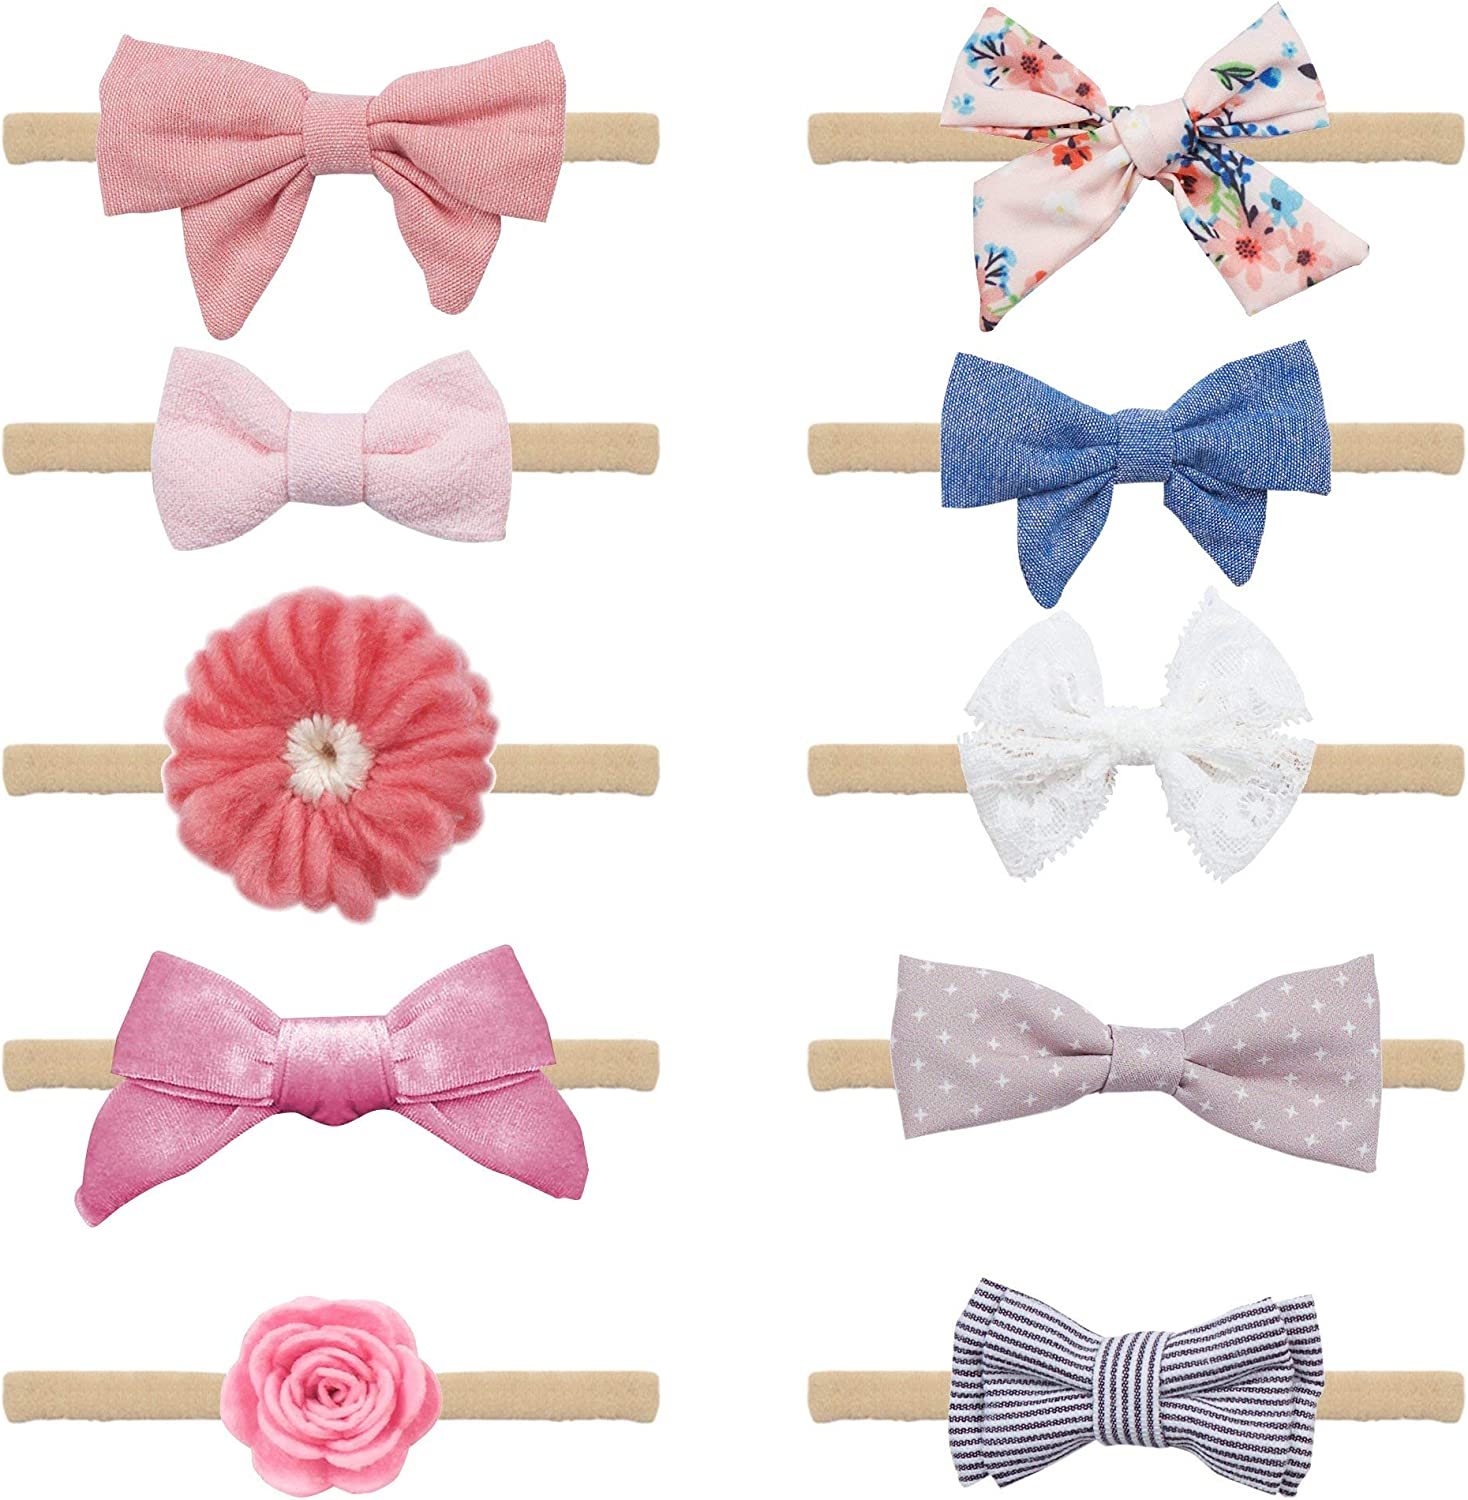 Baby Girl Headbands and Bows - 10 Piece Soft Elastic Nylon Flower Headband Accessories For Newborn, Infant, Toddler - Handcrafted Hair Bands & Ties - Perfect Baby Shower Gift